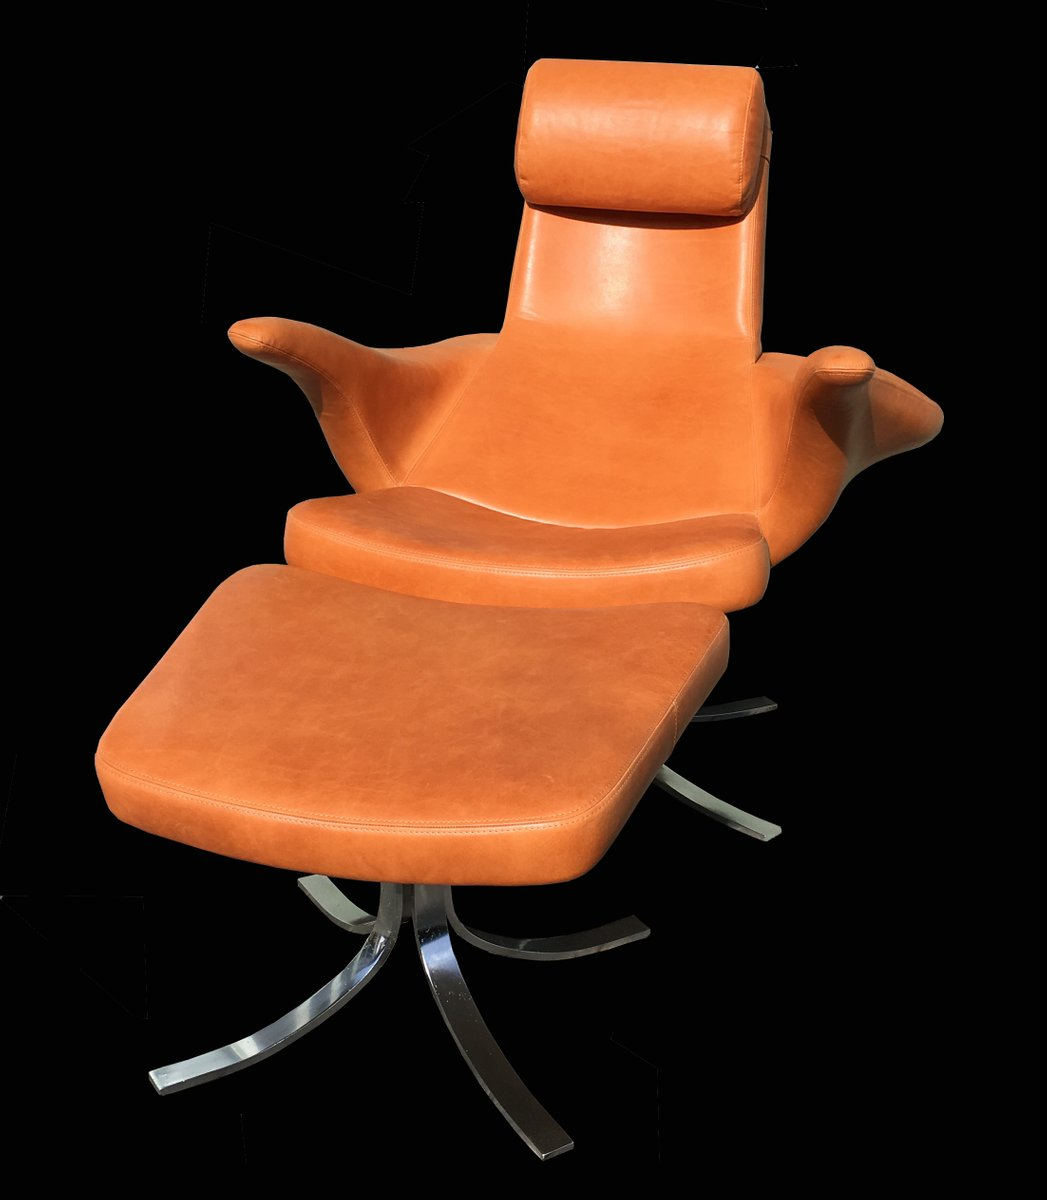 Vintage Seagull Chair And Ottoman By Gosta Amp Eriksson For